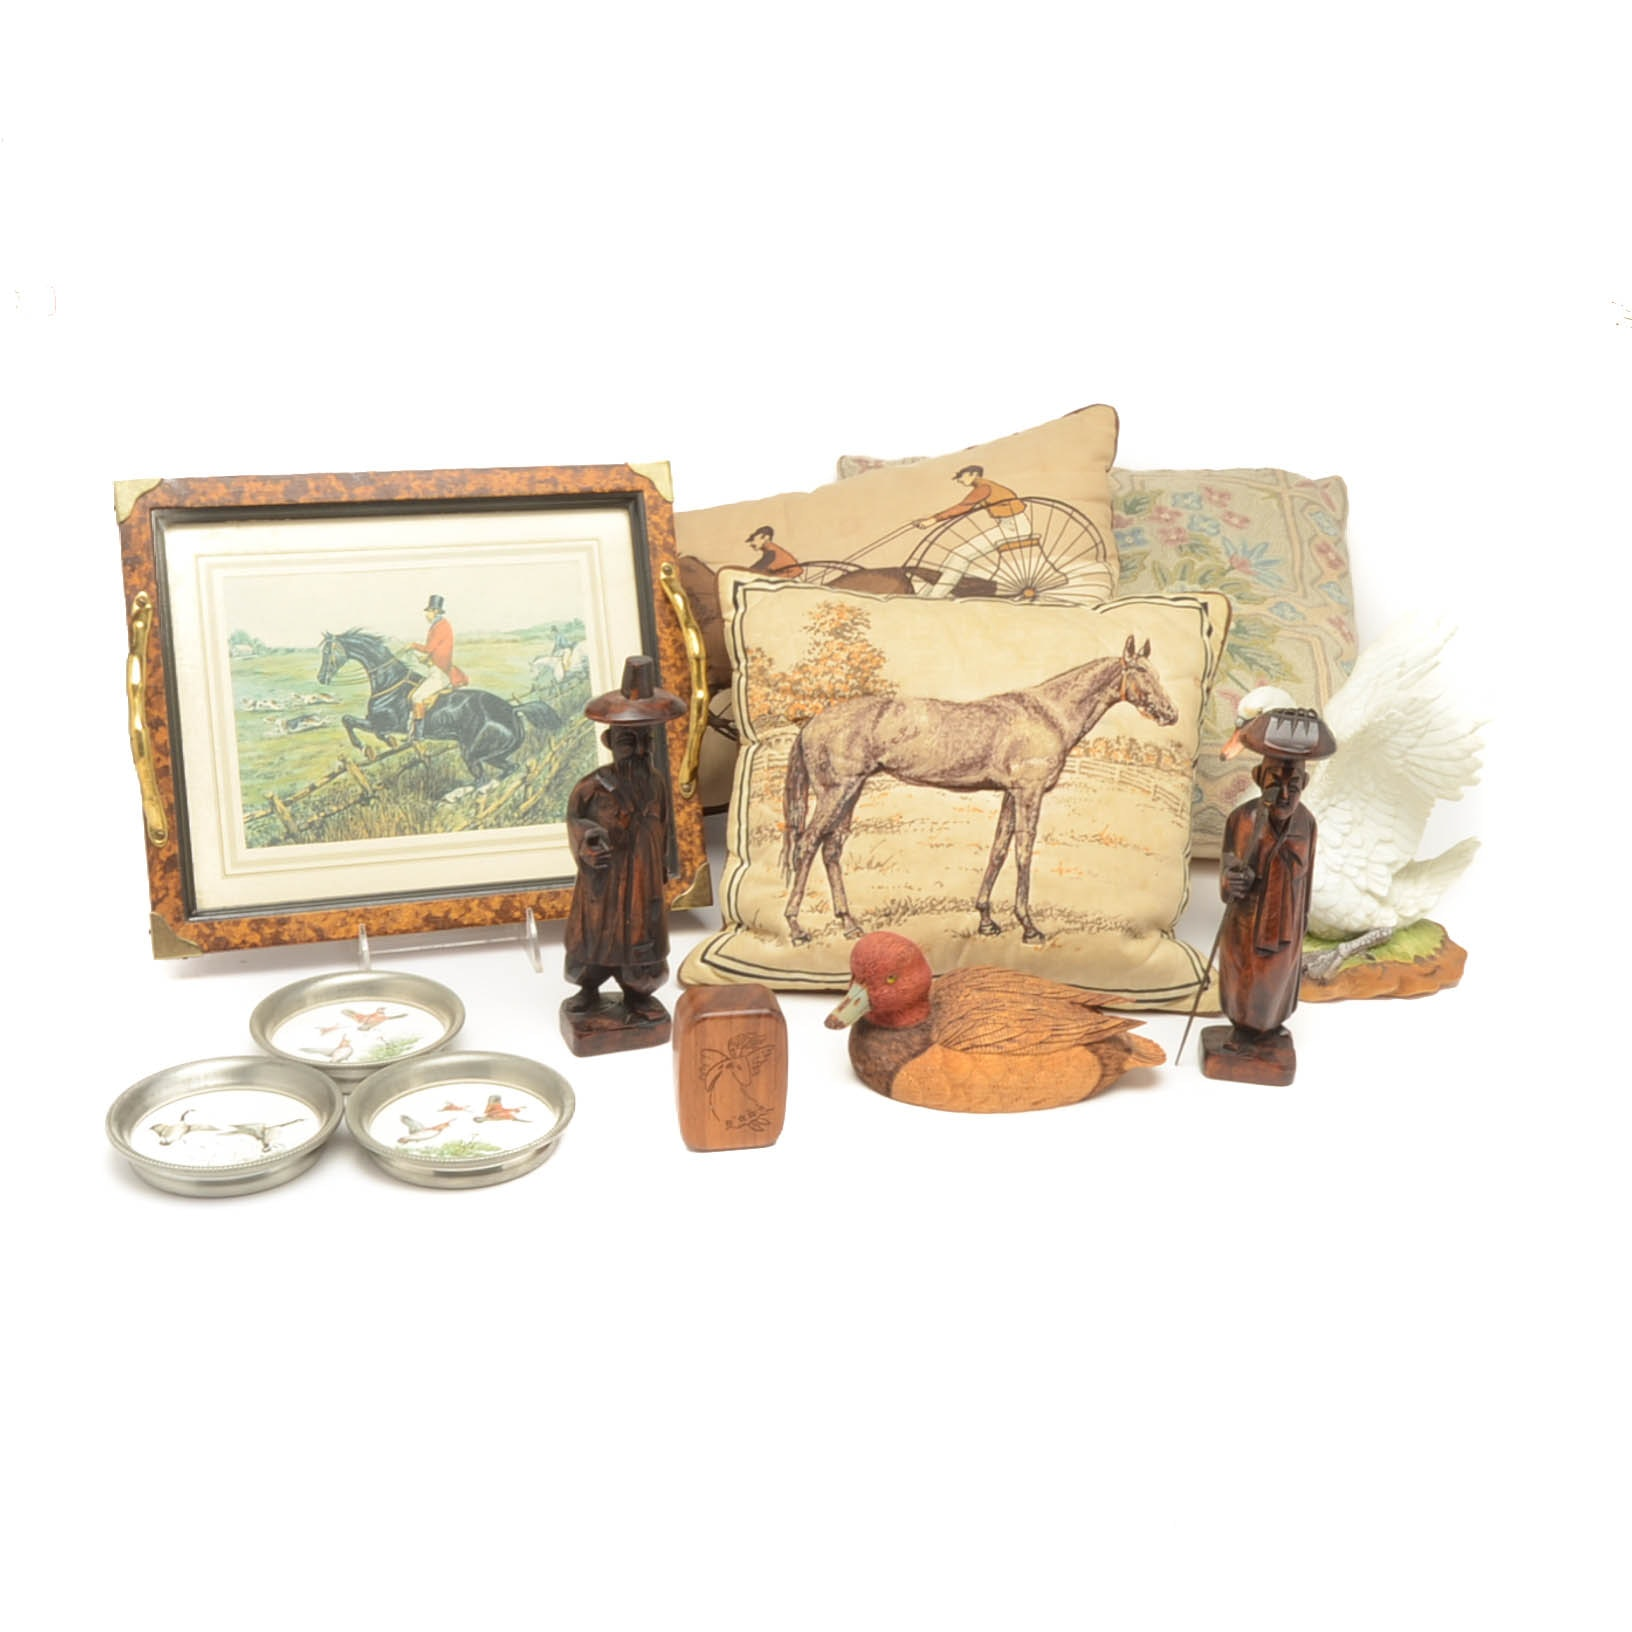 Assorted Vintage Decorative Figurines and More